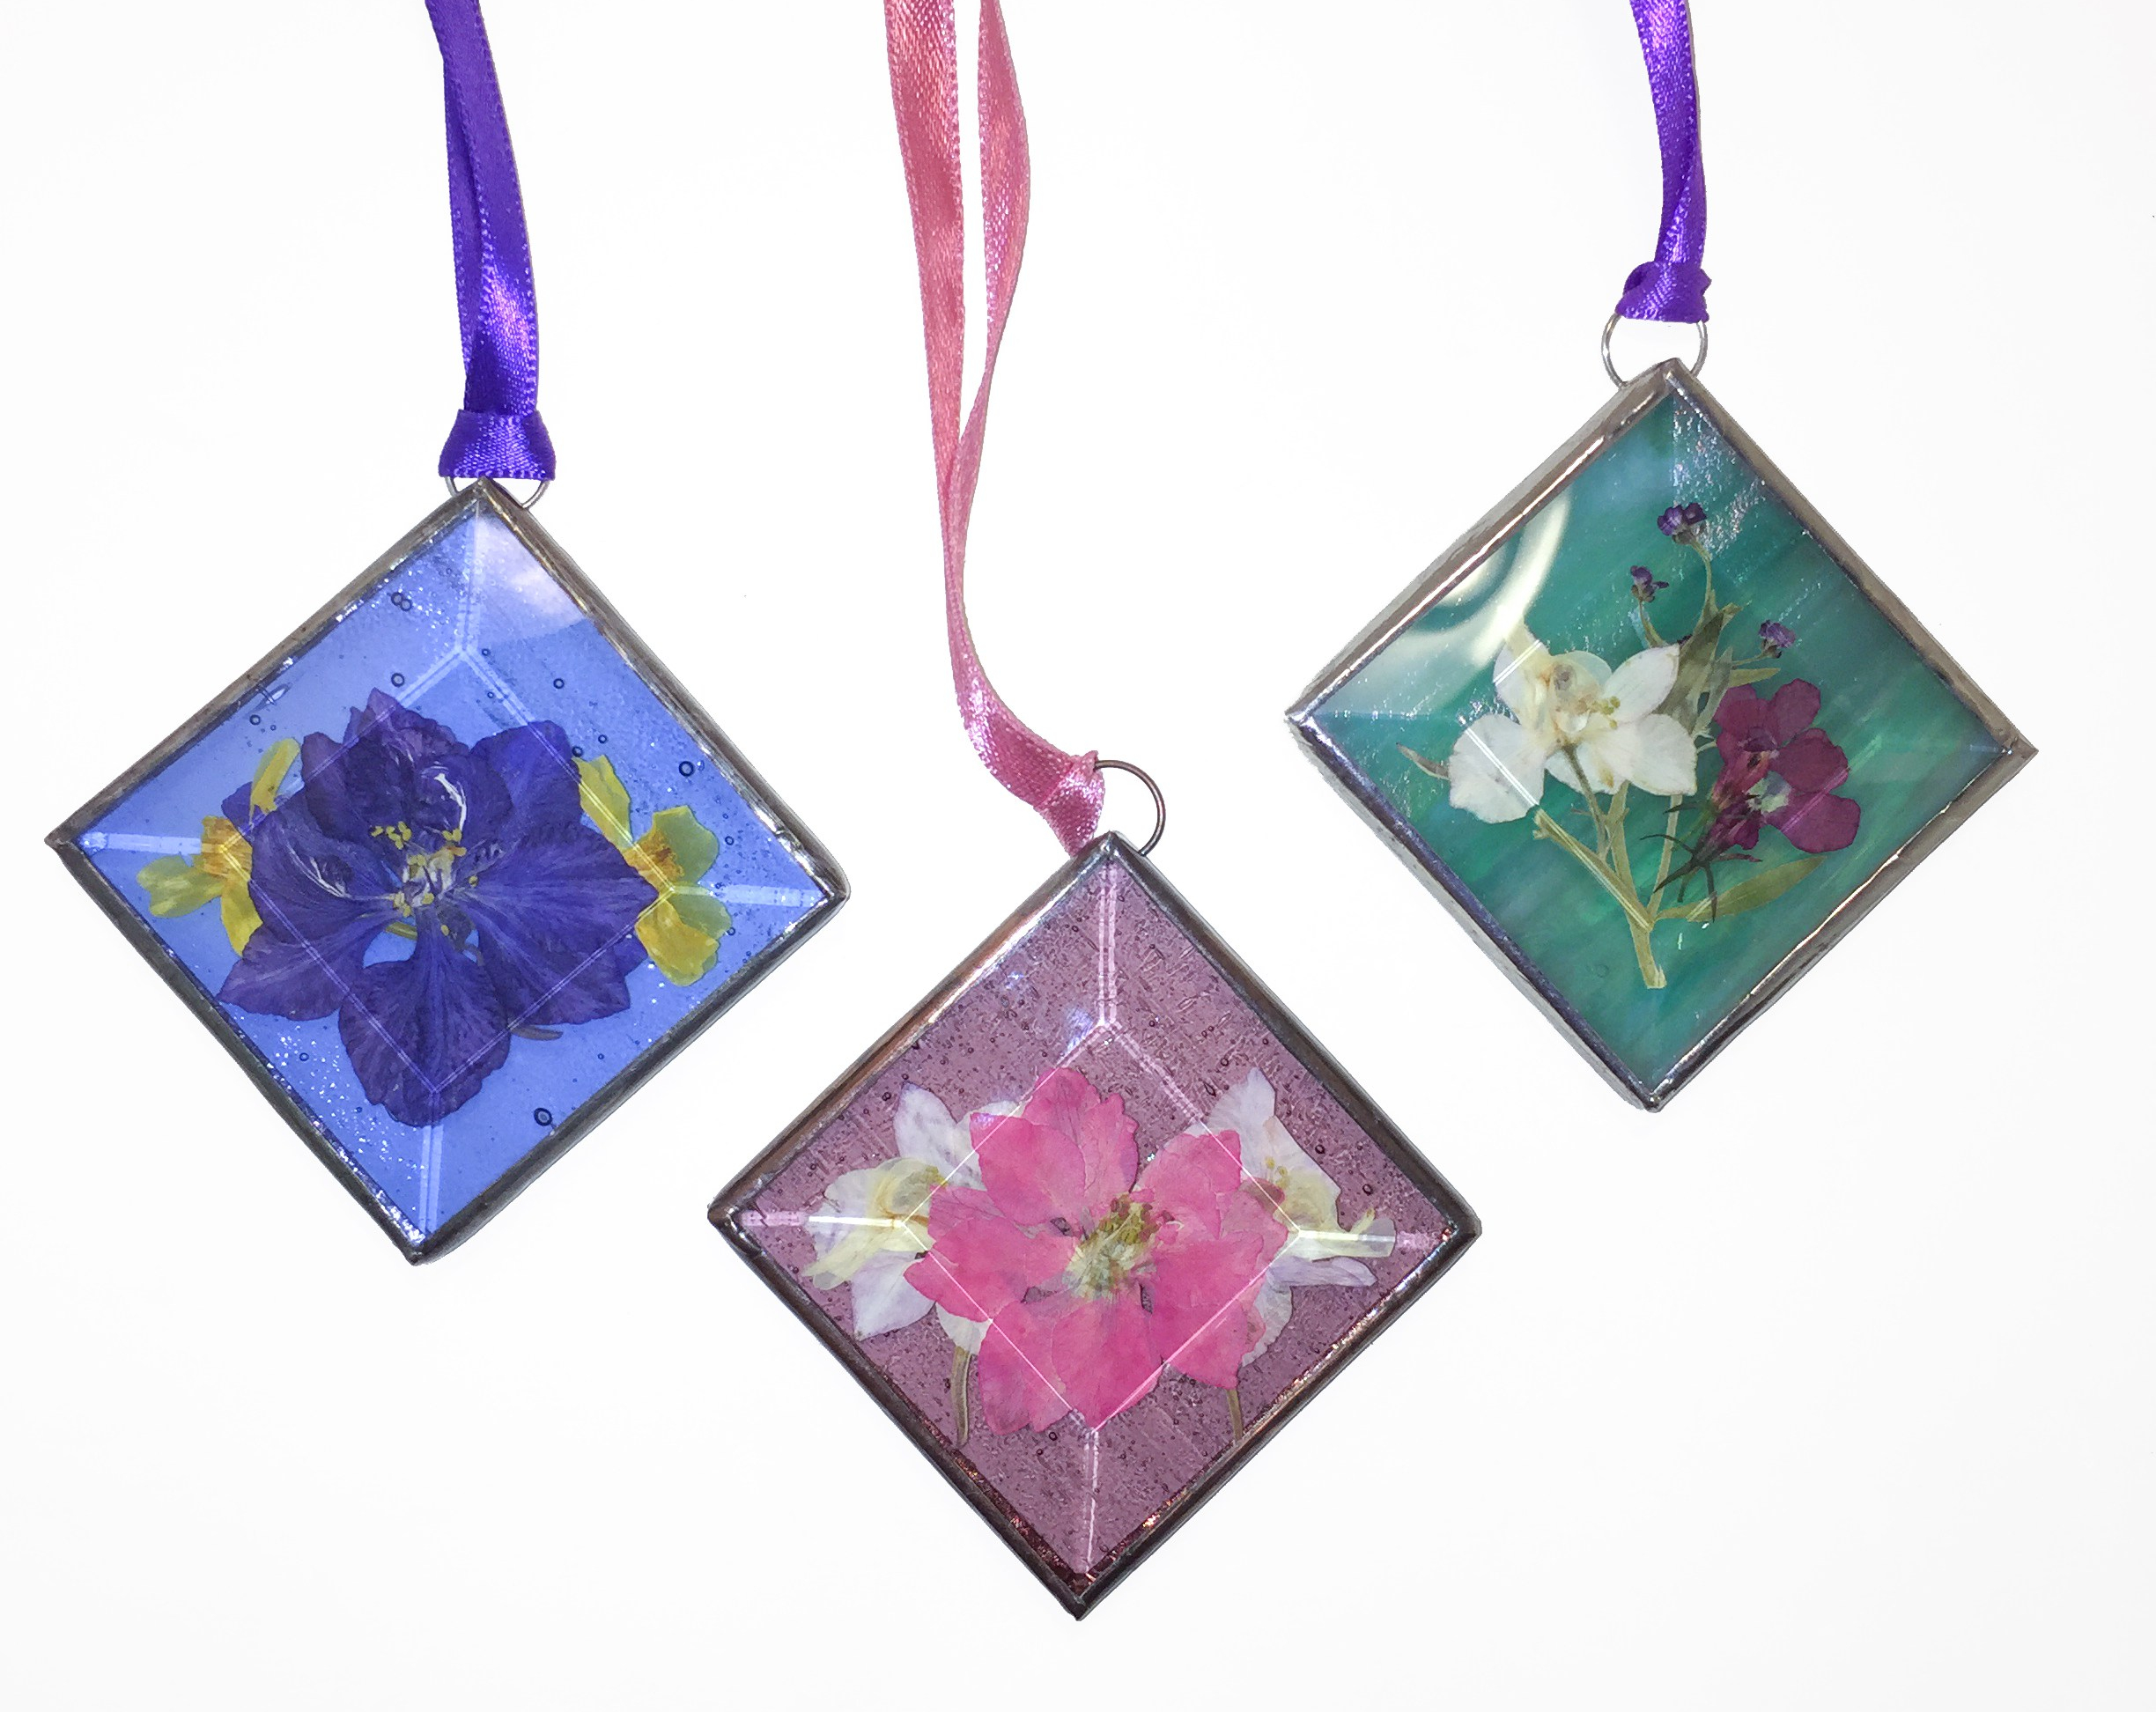 stained glass floral suncatchers